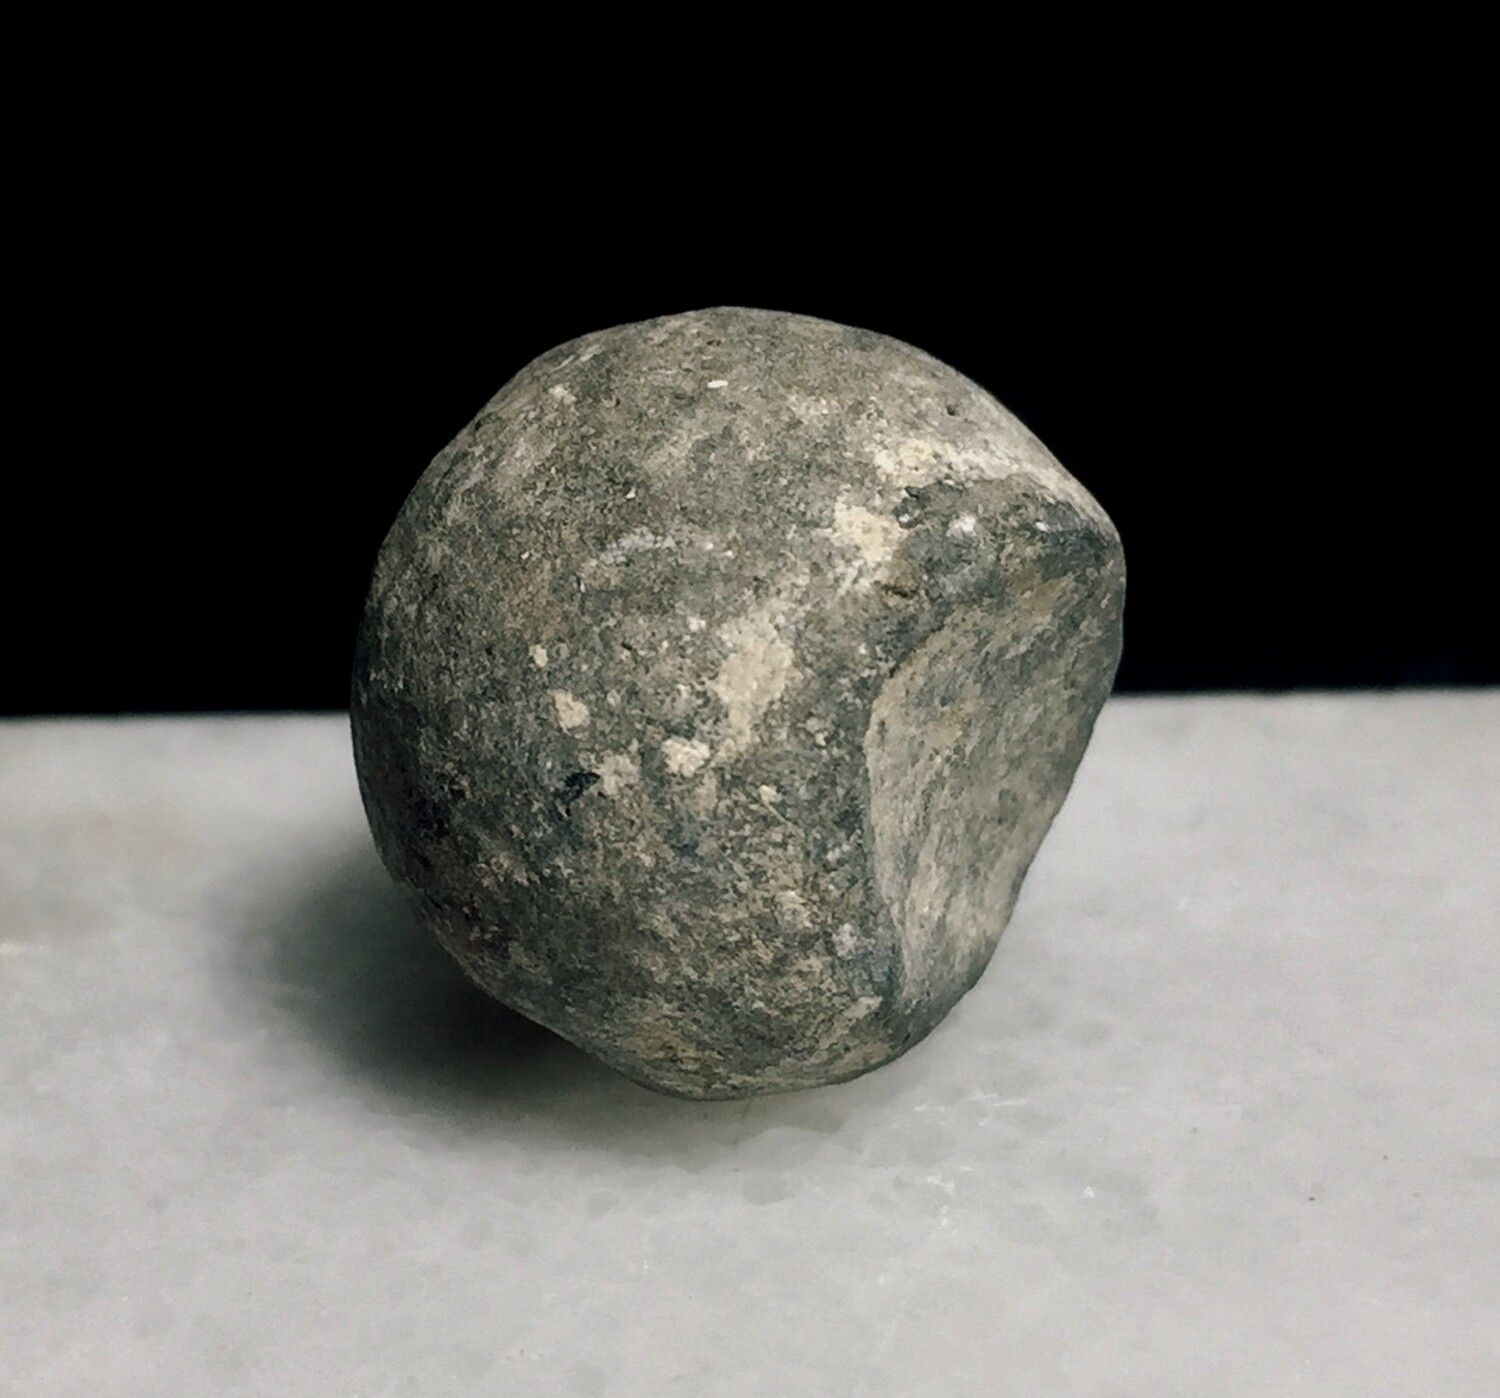 JUST ADDED ON 7/15 - GETTYSBURG  / DEVIL'S DEN / ROSENSTEEL FAMILY - Fired .69 Caliber Musket Ball